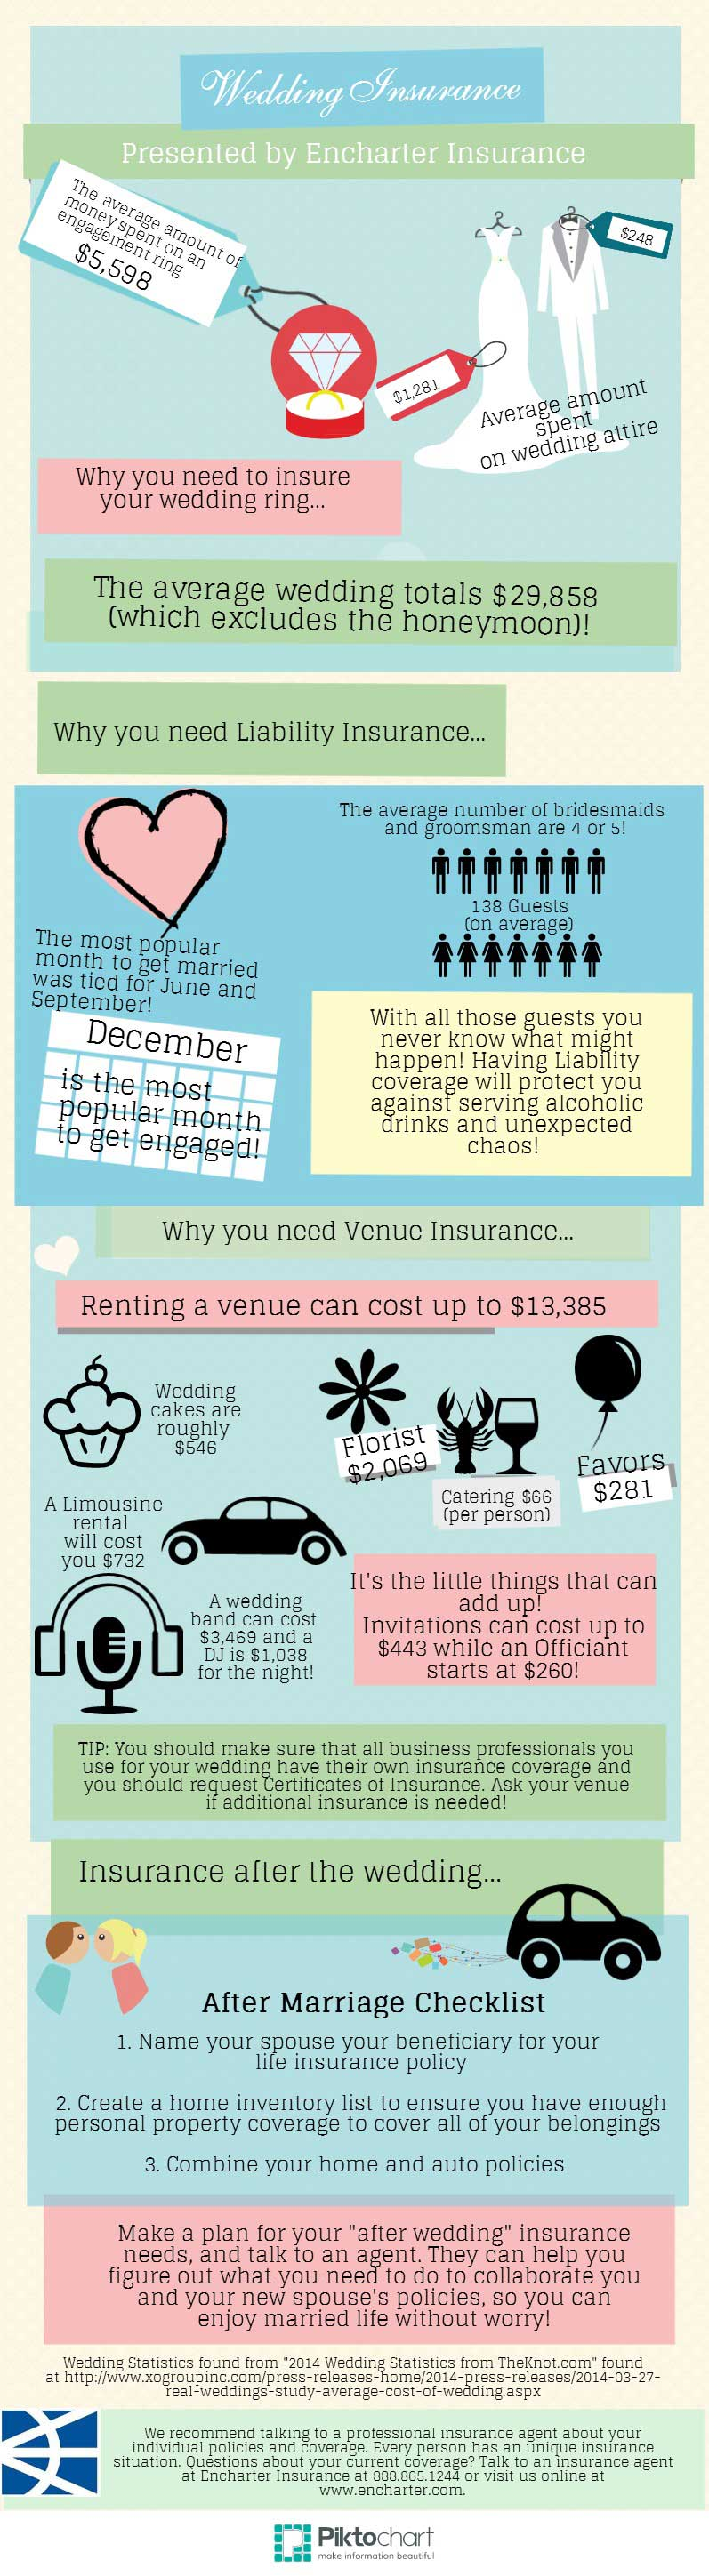 weddings and insurance infographic